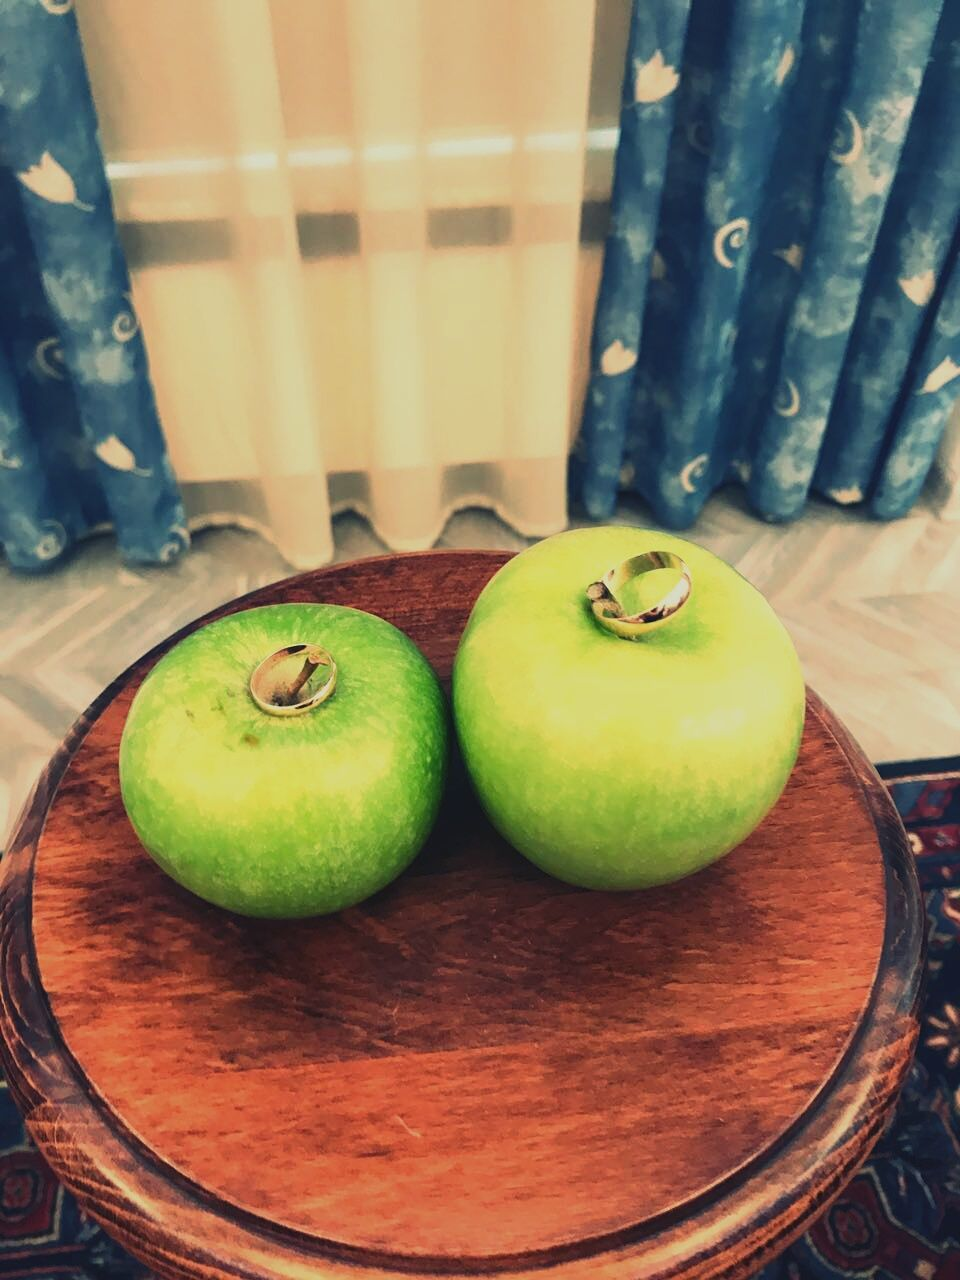 indoors, table, fruit, still life, food and drink, food, freshness, healthy eating, no people, green color, apple - fruit, plate, day, close-up, ready-to-eat